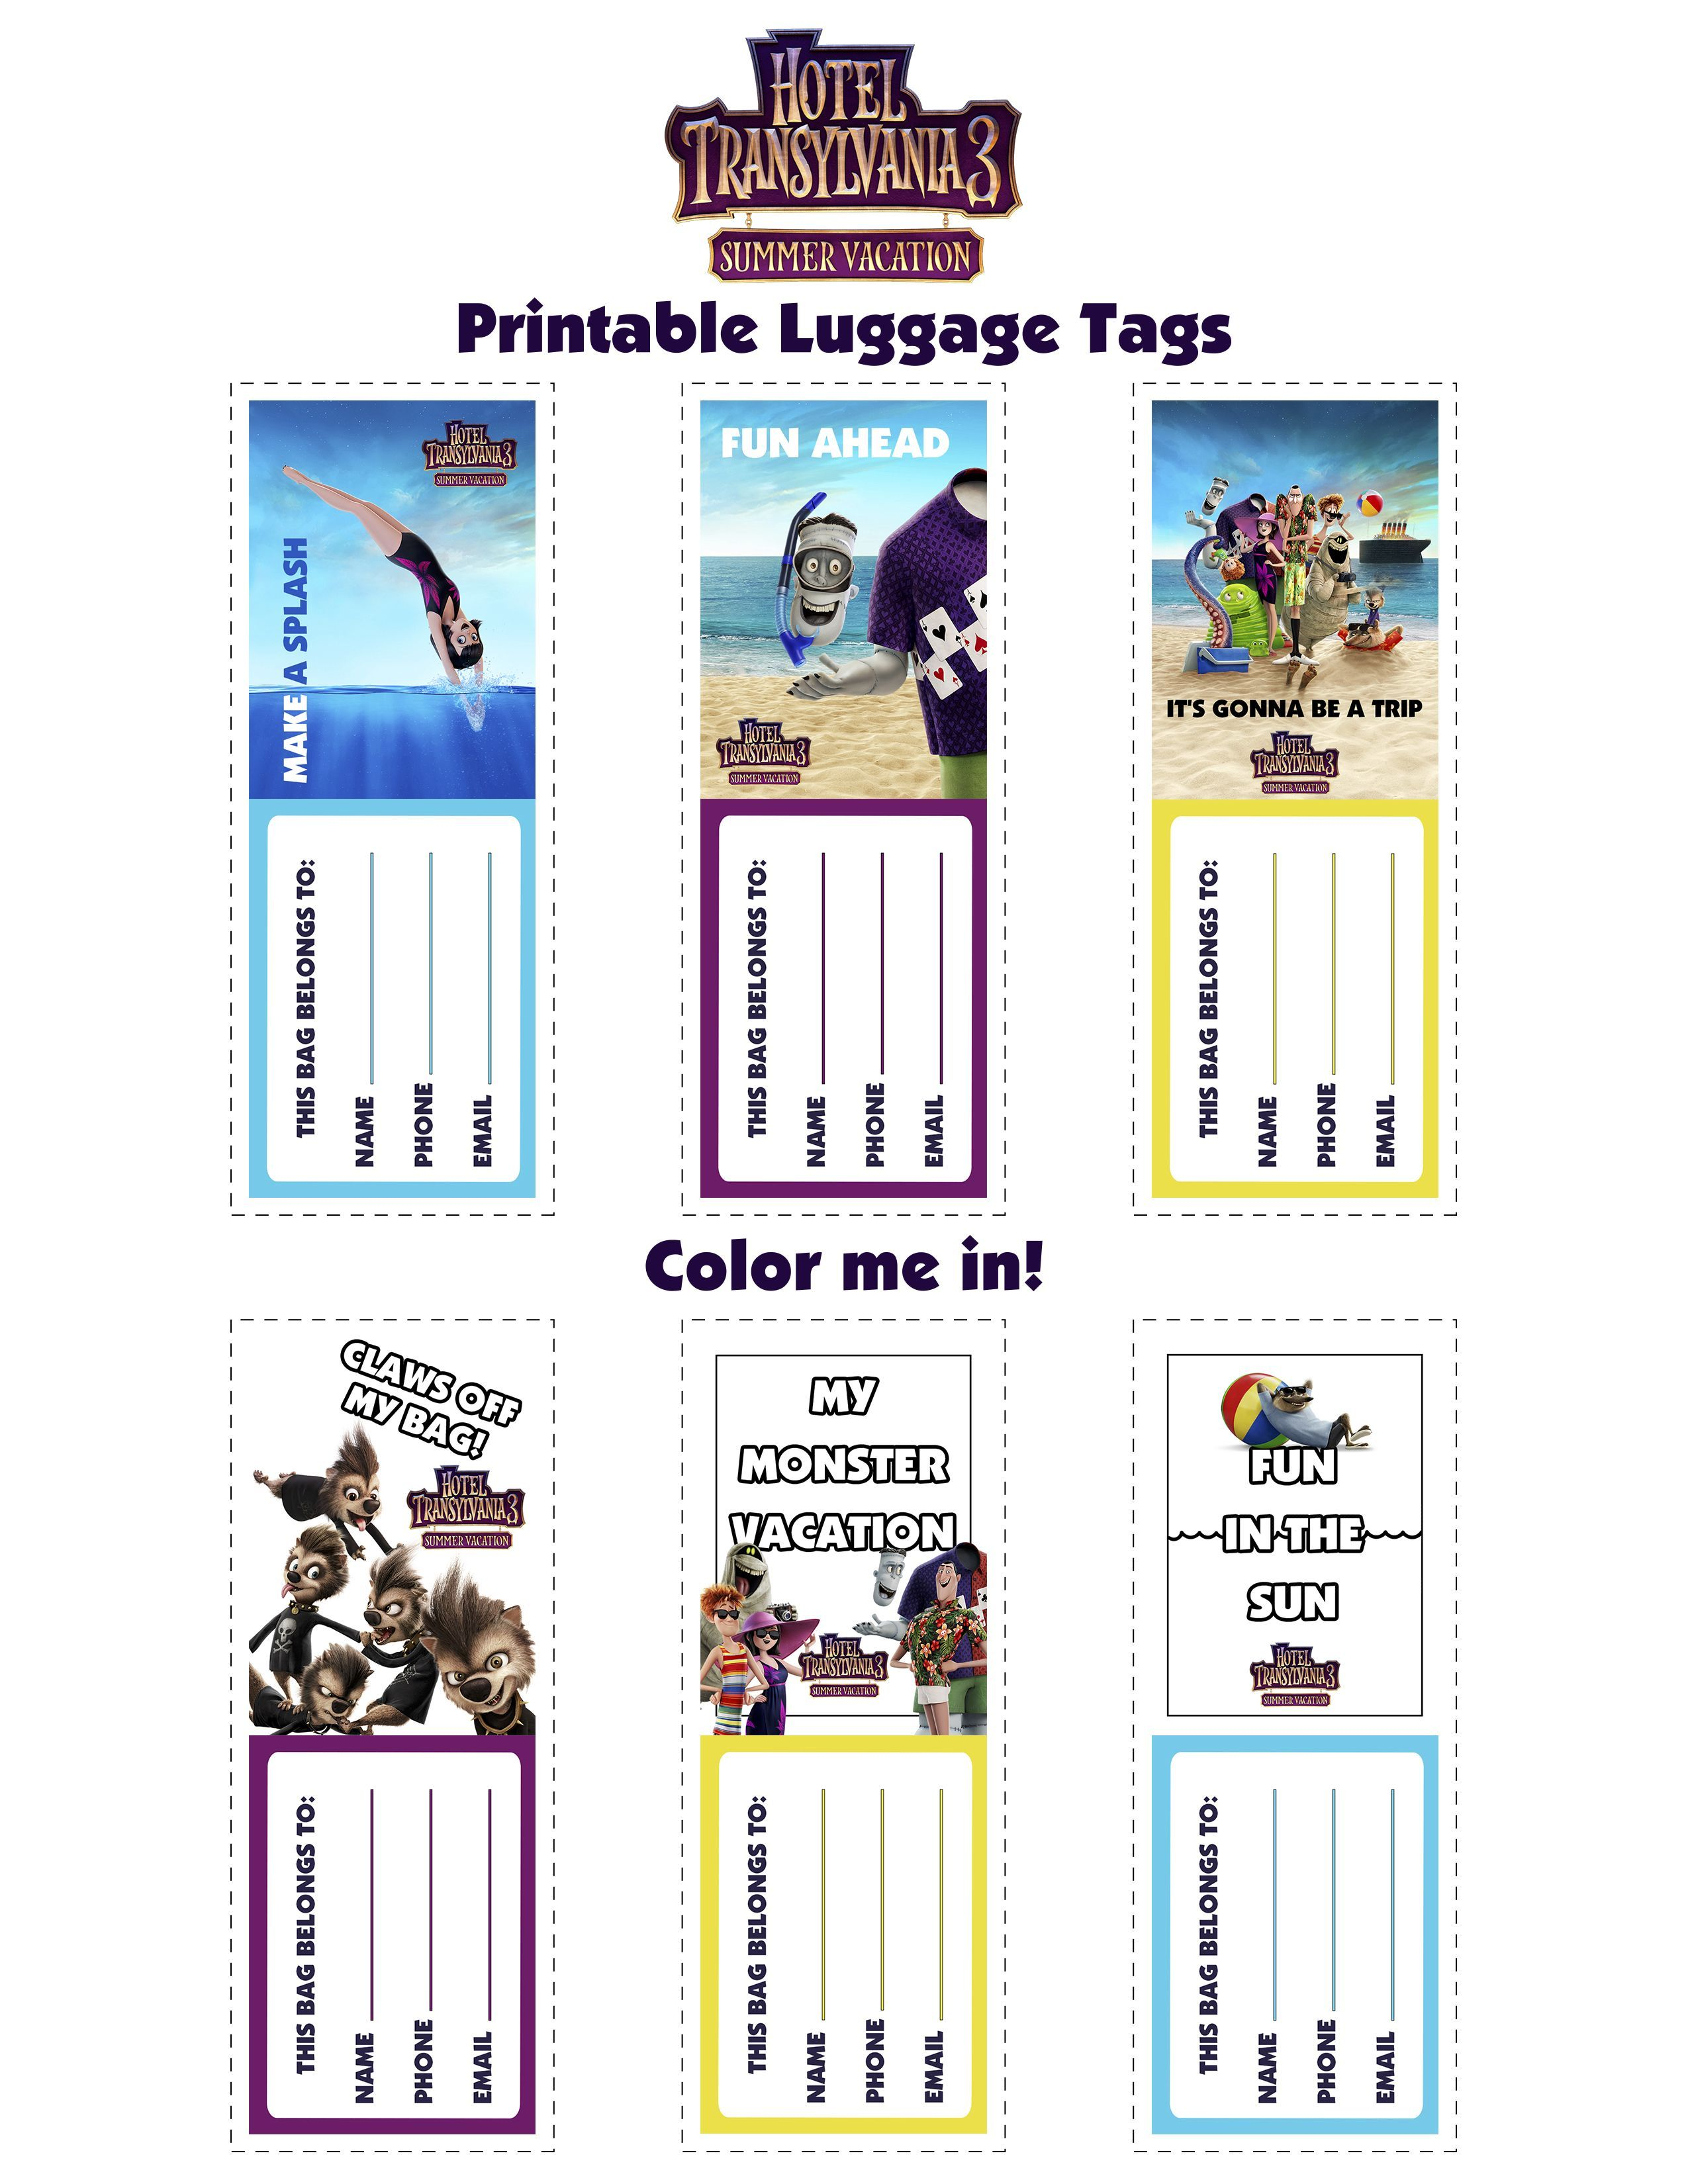 Print At Home Luggage Tags For Your Family Vacation Printable Diy Luggage